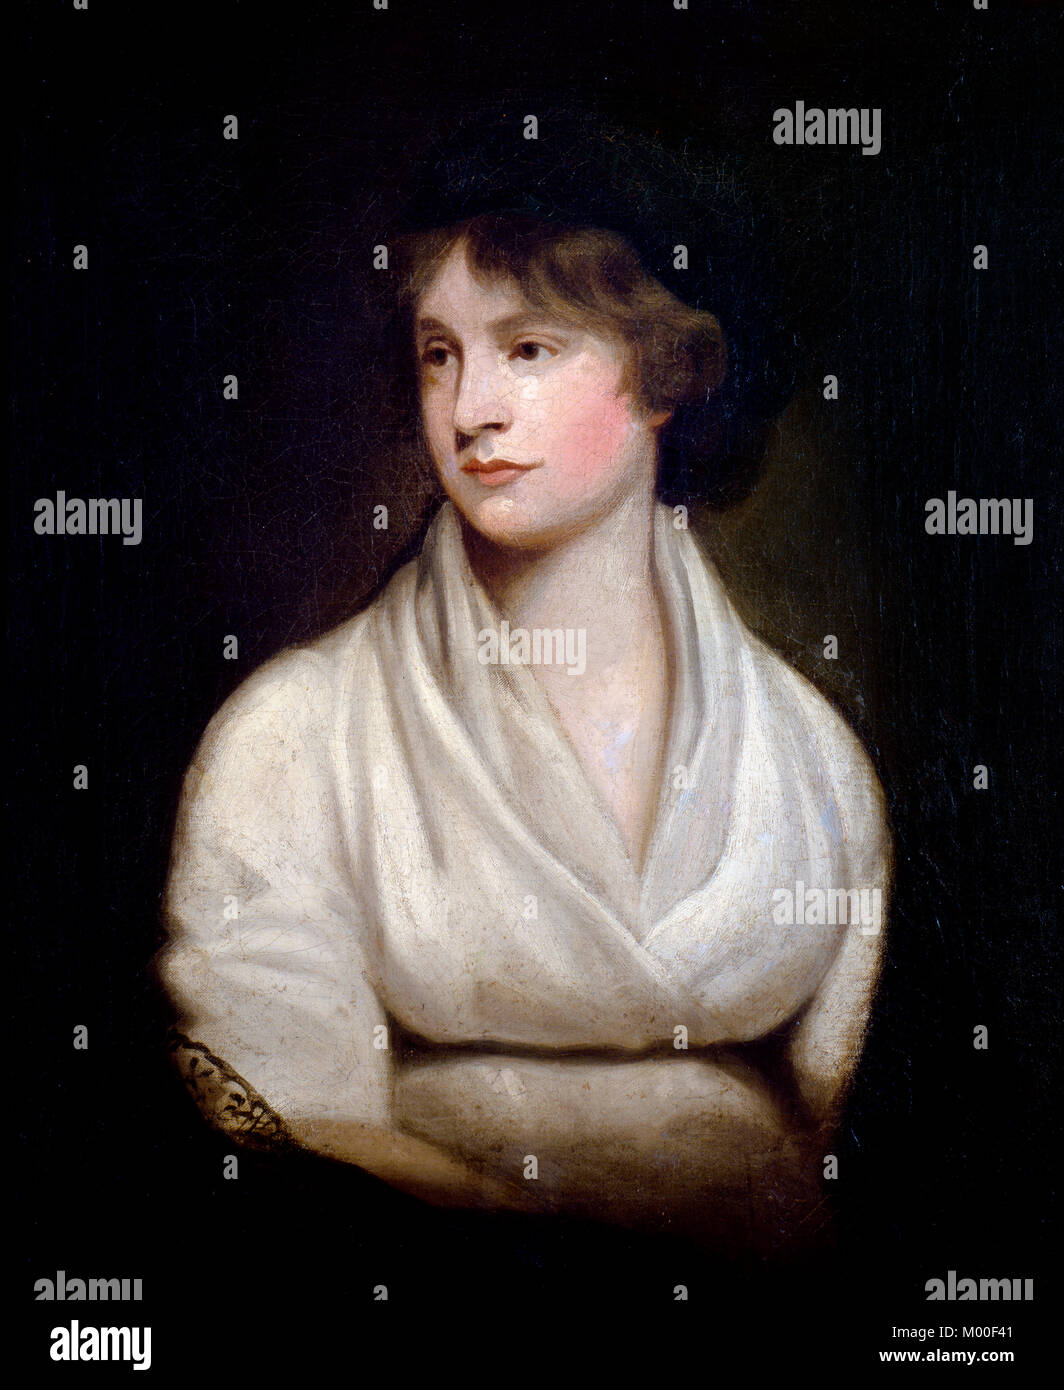 Mary Wollstonecraft (1759-1797), portrait of the writer, activist and mother of Mary Shelley. Copy by John Keenan - Stock Image